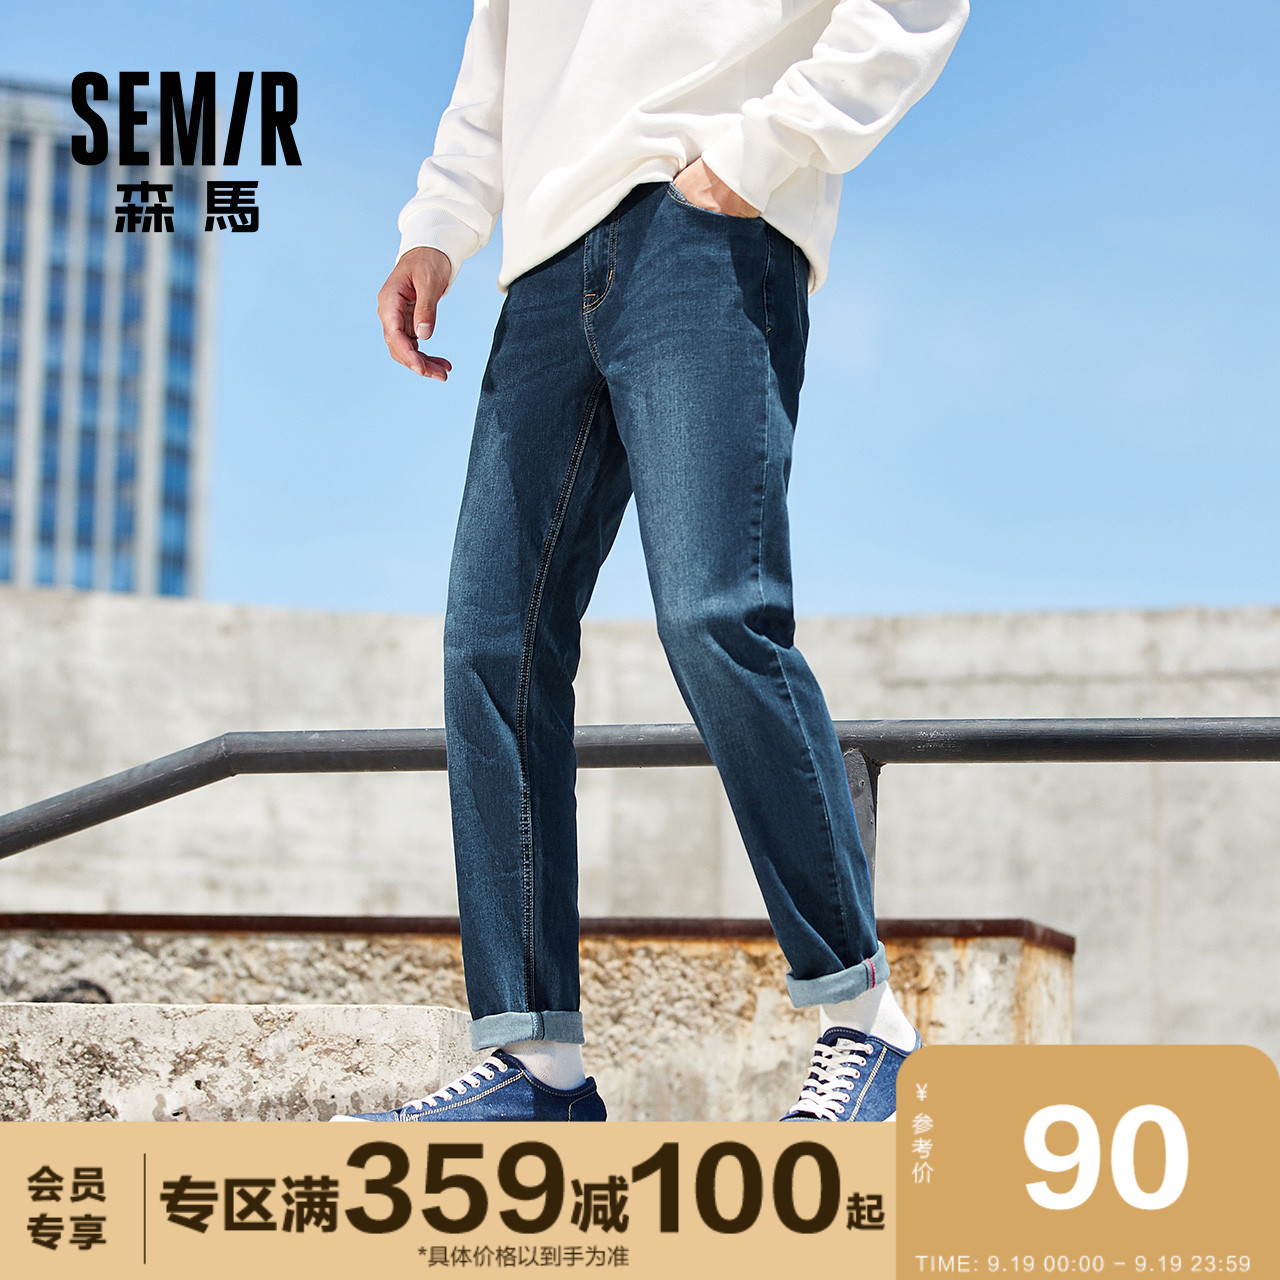 Semir jeans men's slim feet trousers men's Korean version of the trend of stretch pants autumn new black tide brand